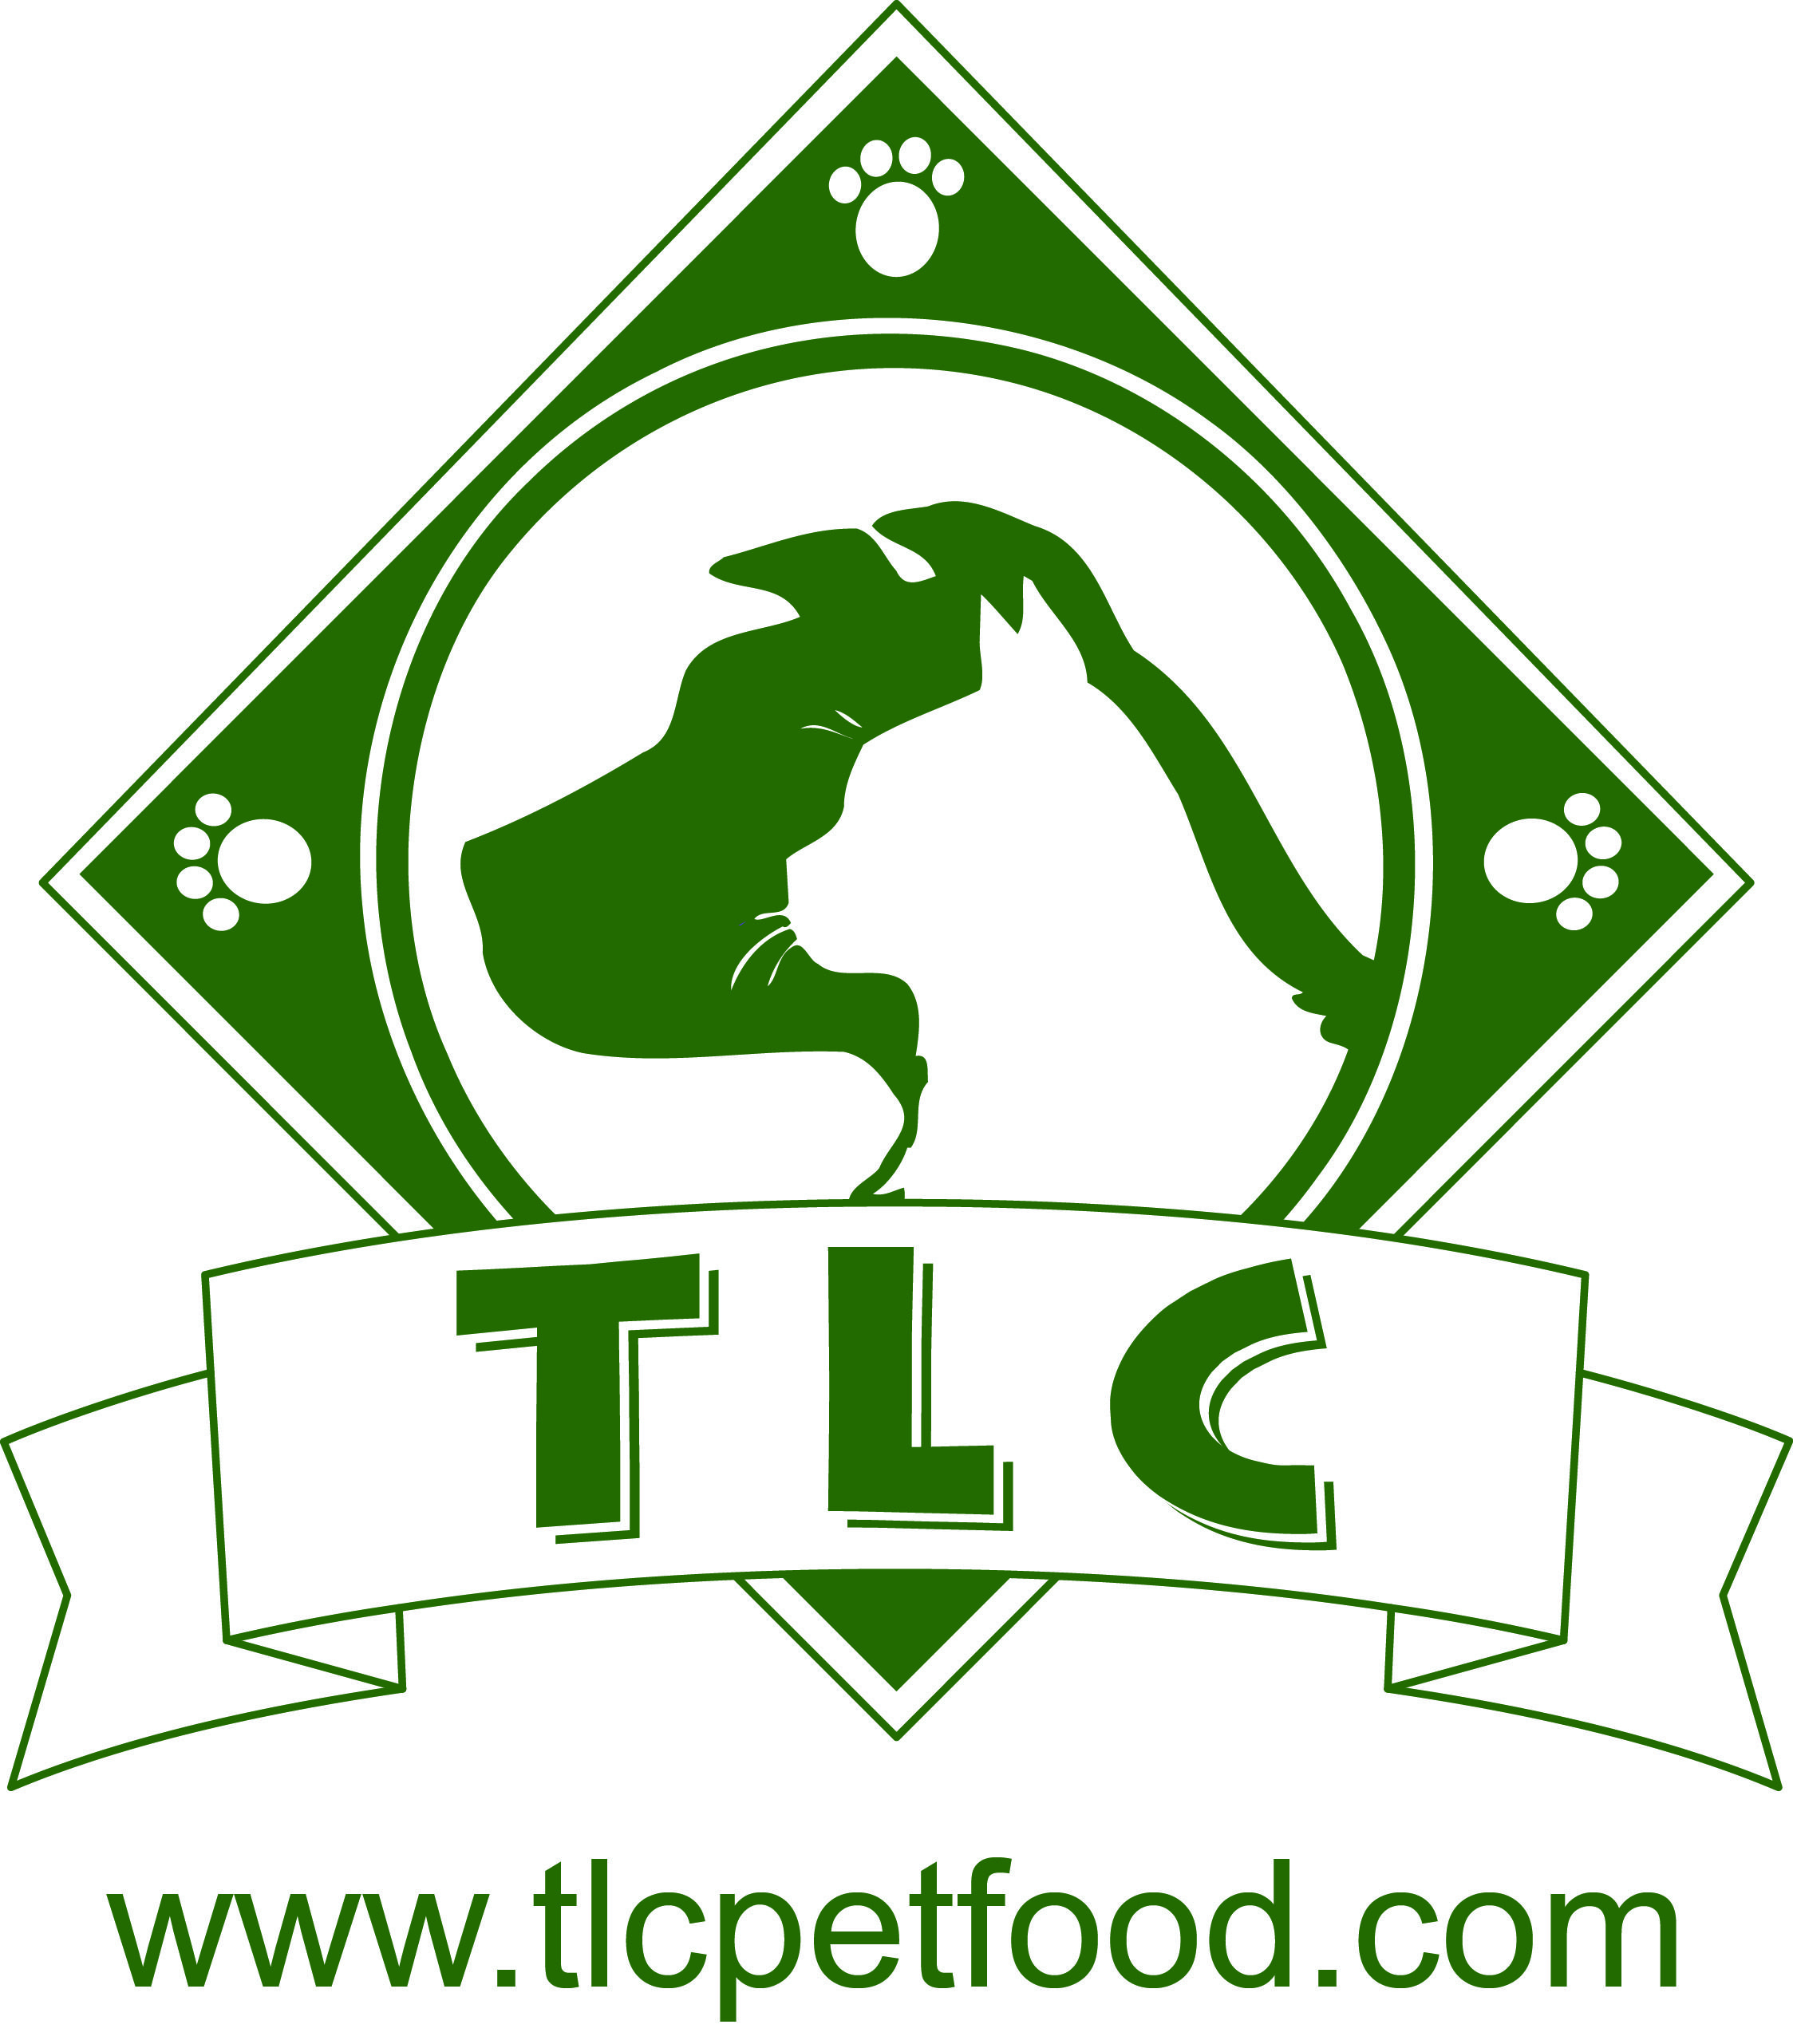 10 Things I Love about TLC Pet Food Pets, All natural